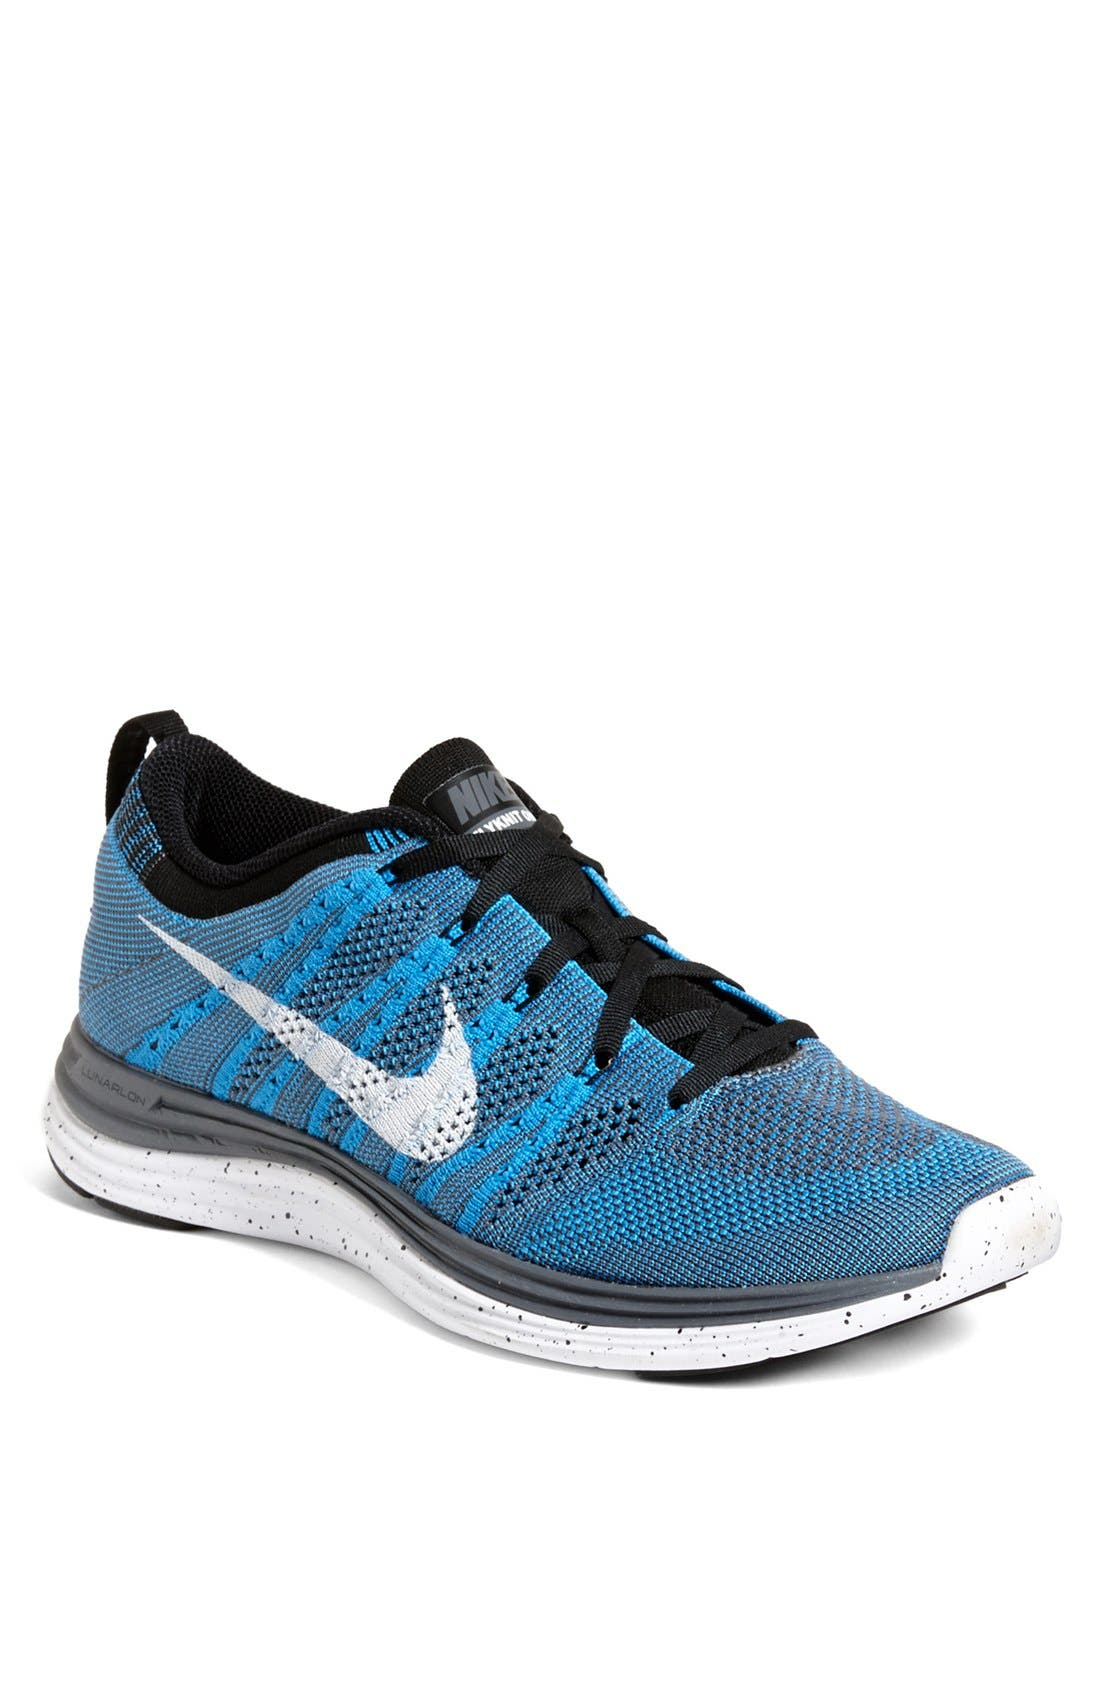 Alternate Image 1 Selected - Nike 'Flyknit Lunar1+' Running Shoe (Men)